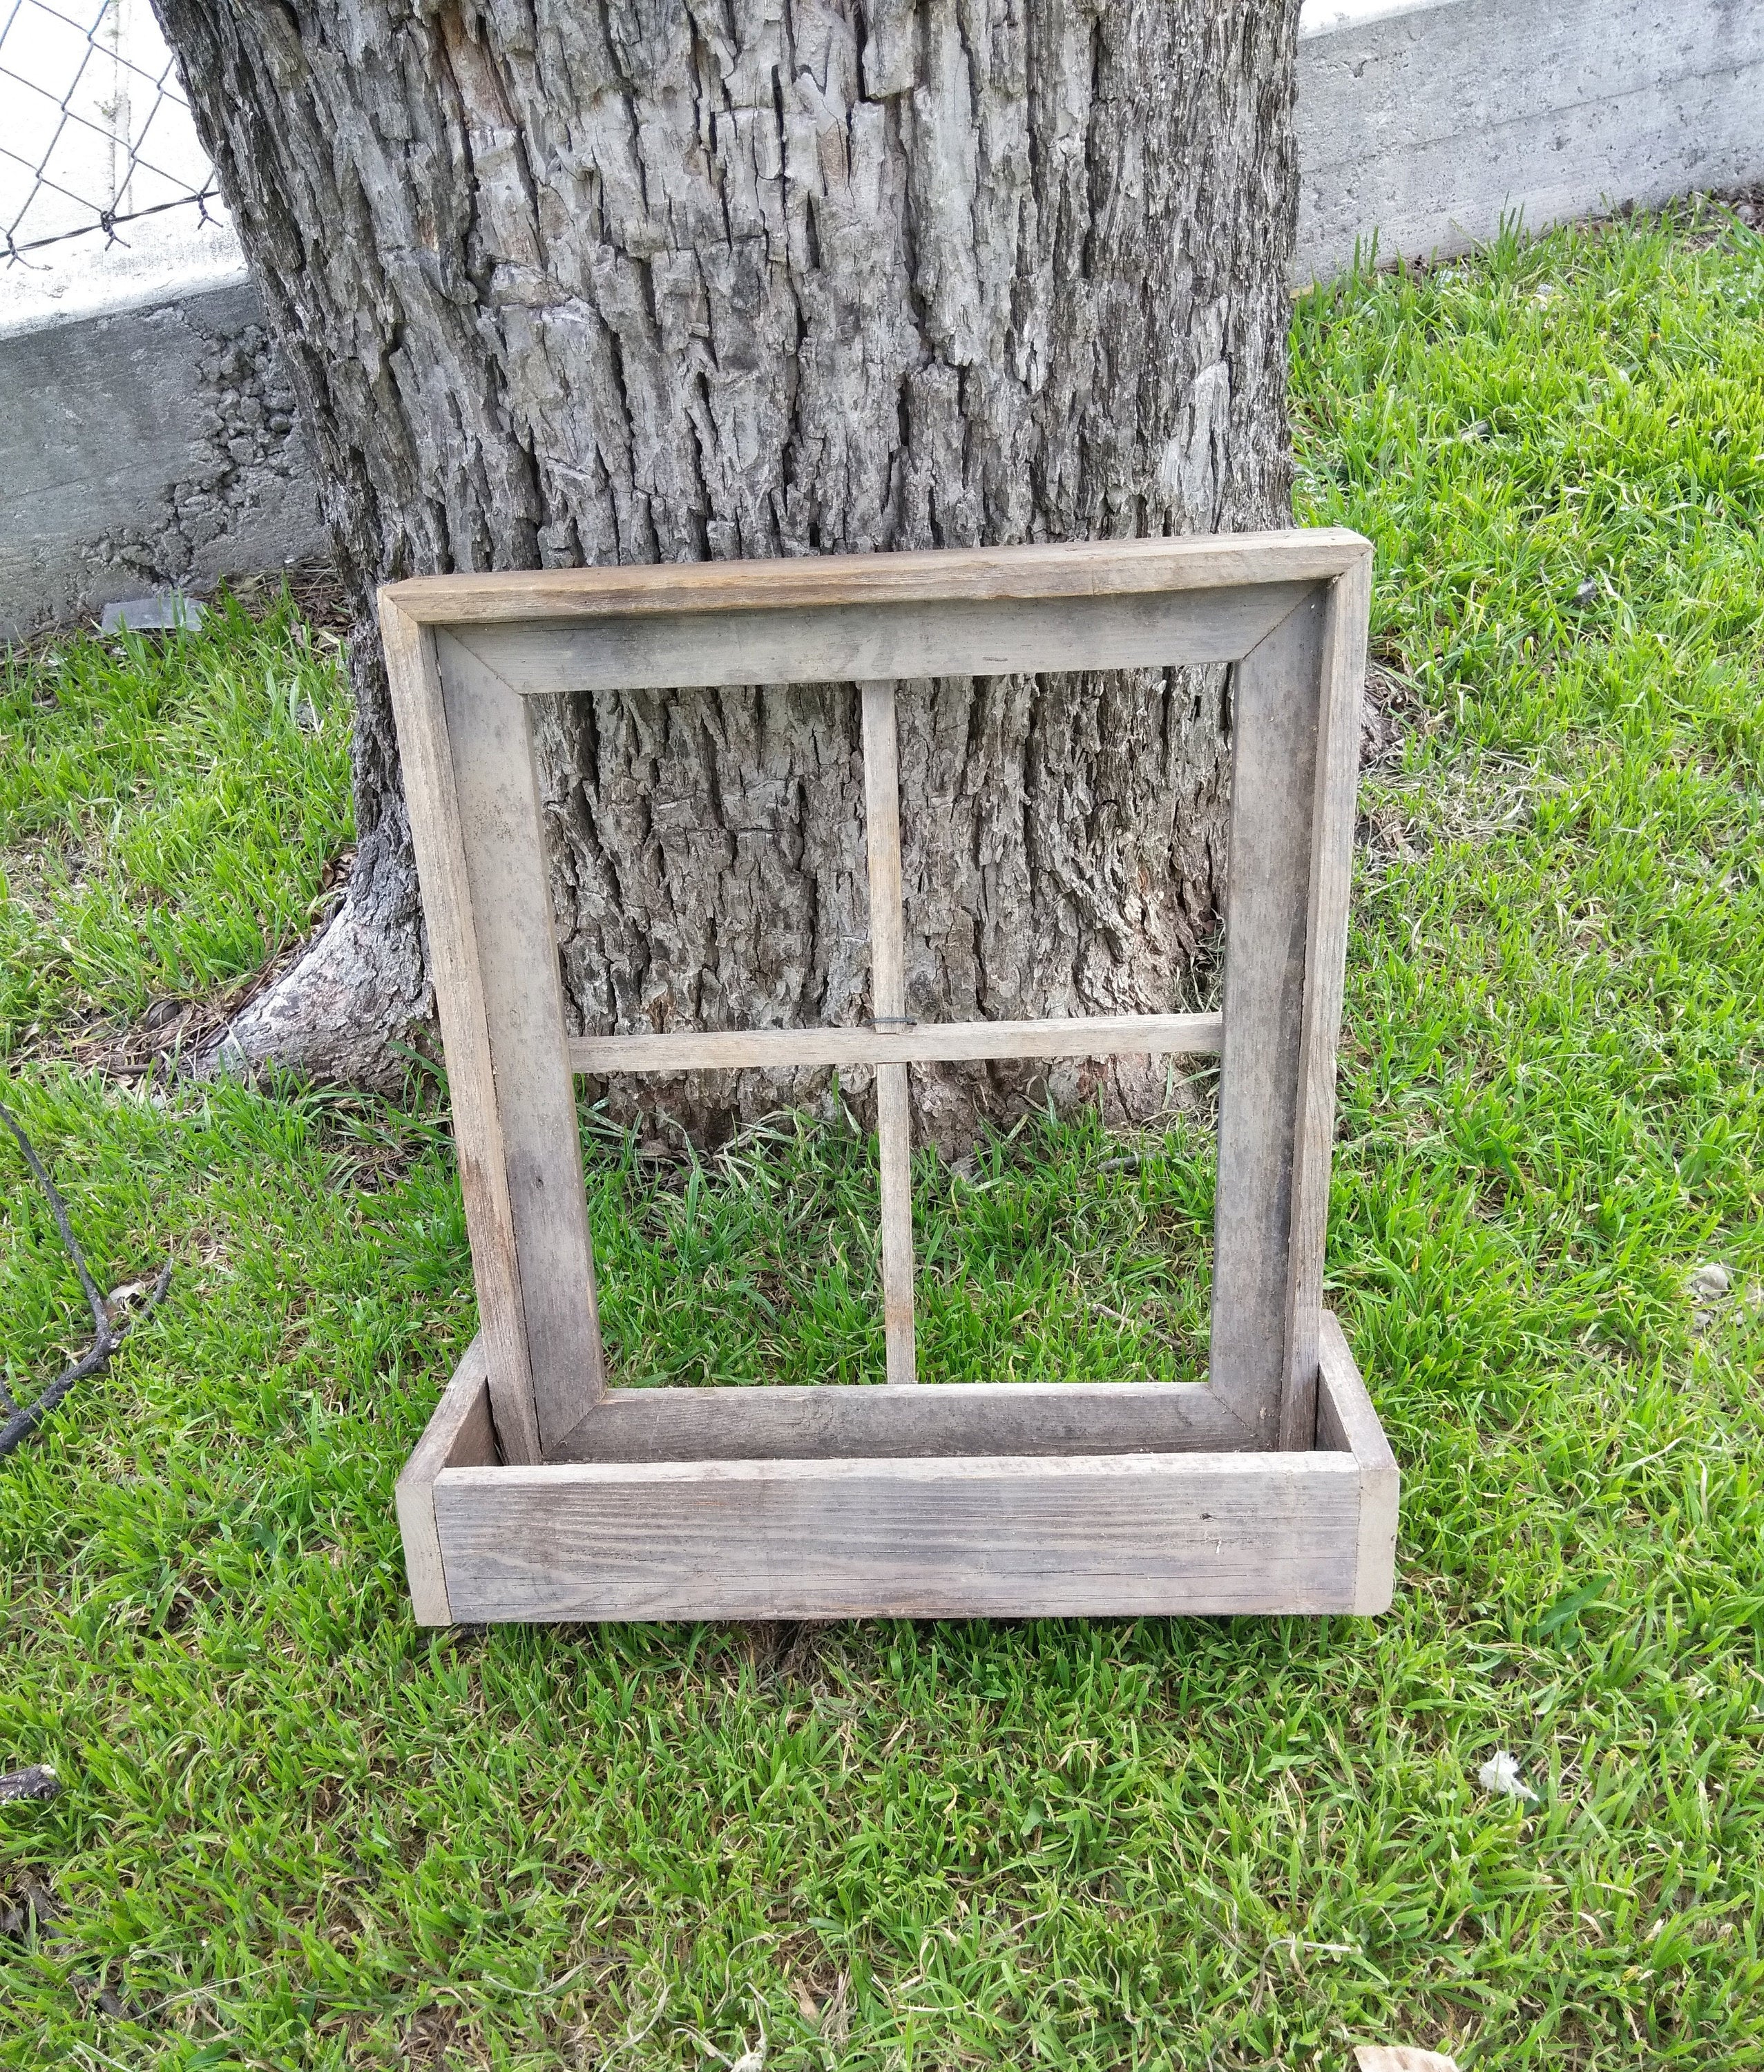 Reclaimed Barn Window Frame Window Planter Box, Rustic Window Box Planter  Gray Weather Wood Farmhouse Wood Salvage Decor Intended For Old Rustic Barn Window Frame (Gallery 29 of 30)